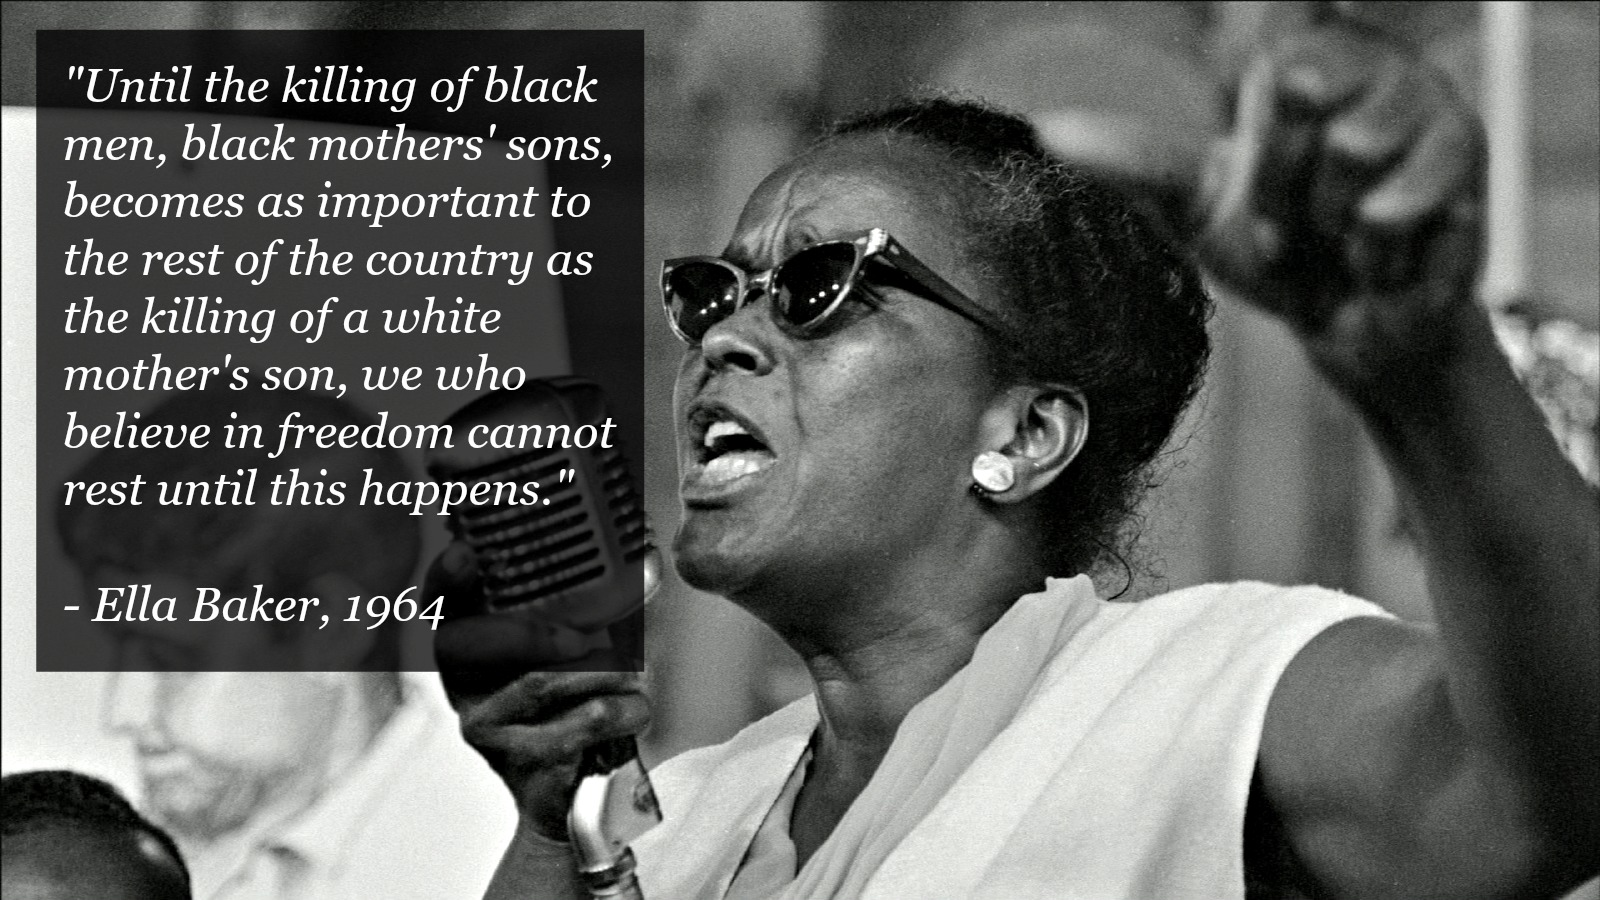 ella baker and the black freedom The book ella baker and the black freedom movement: a radical democratic  vision, by dr barbara ransby was an incredible and extremely moving book.